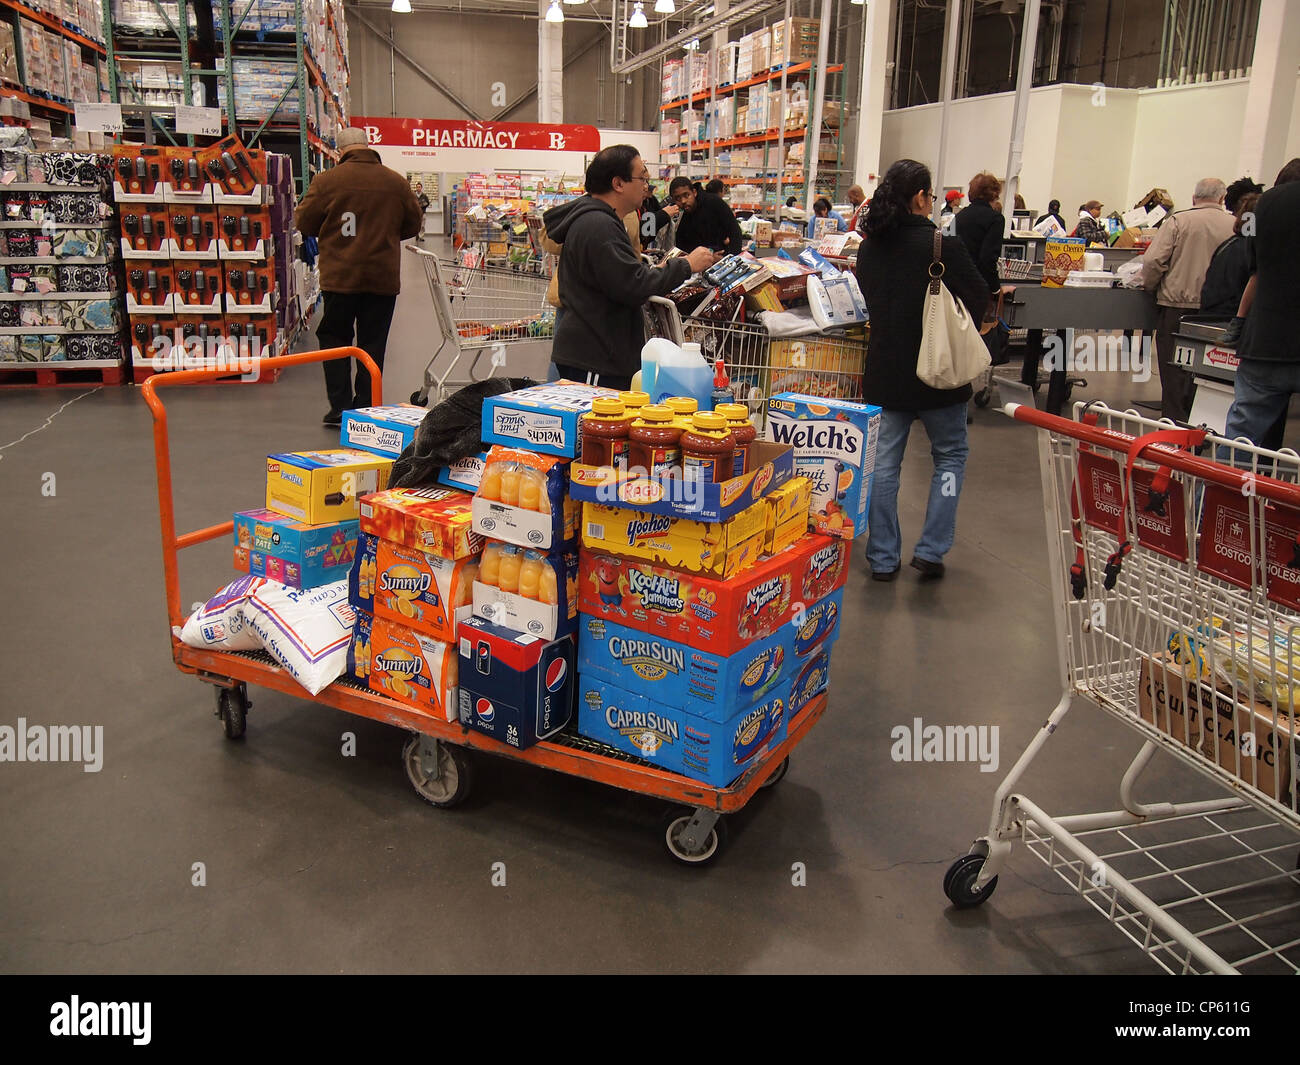 Costco (Costco Wholesale Corporation) is the largest U.S. retail chain storage available on a State privilege. It is also the third largest retail network in the U.S. () and ninth in the world. Costco sells large quantities of goods, often in packs.